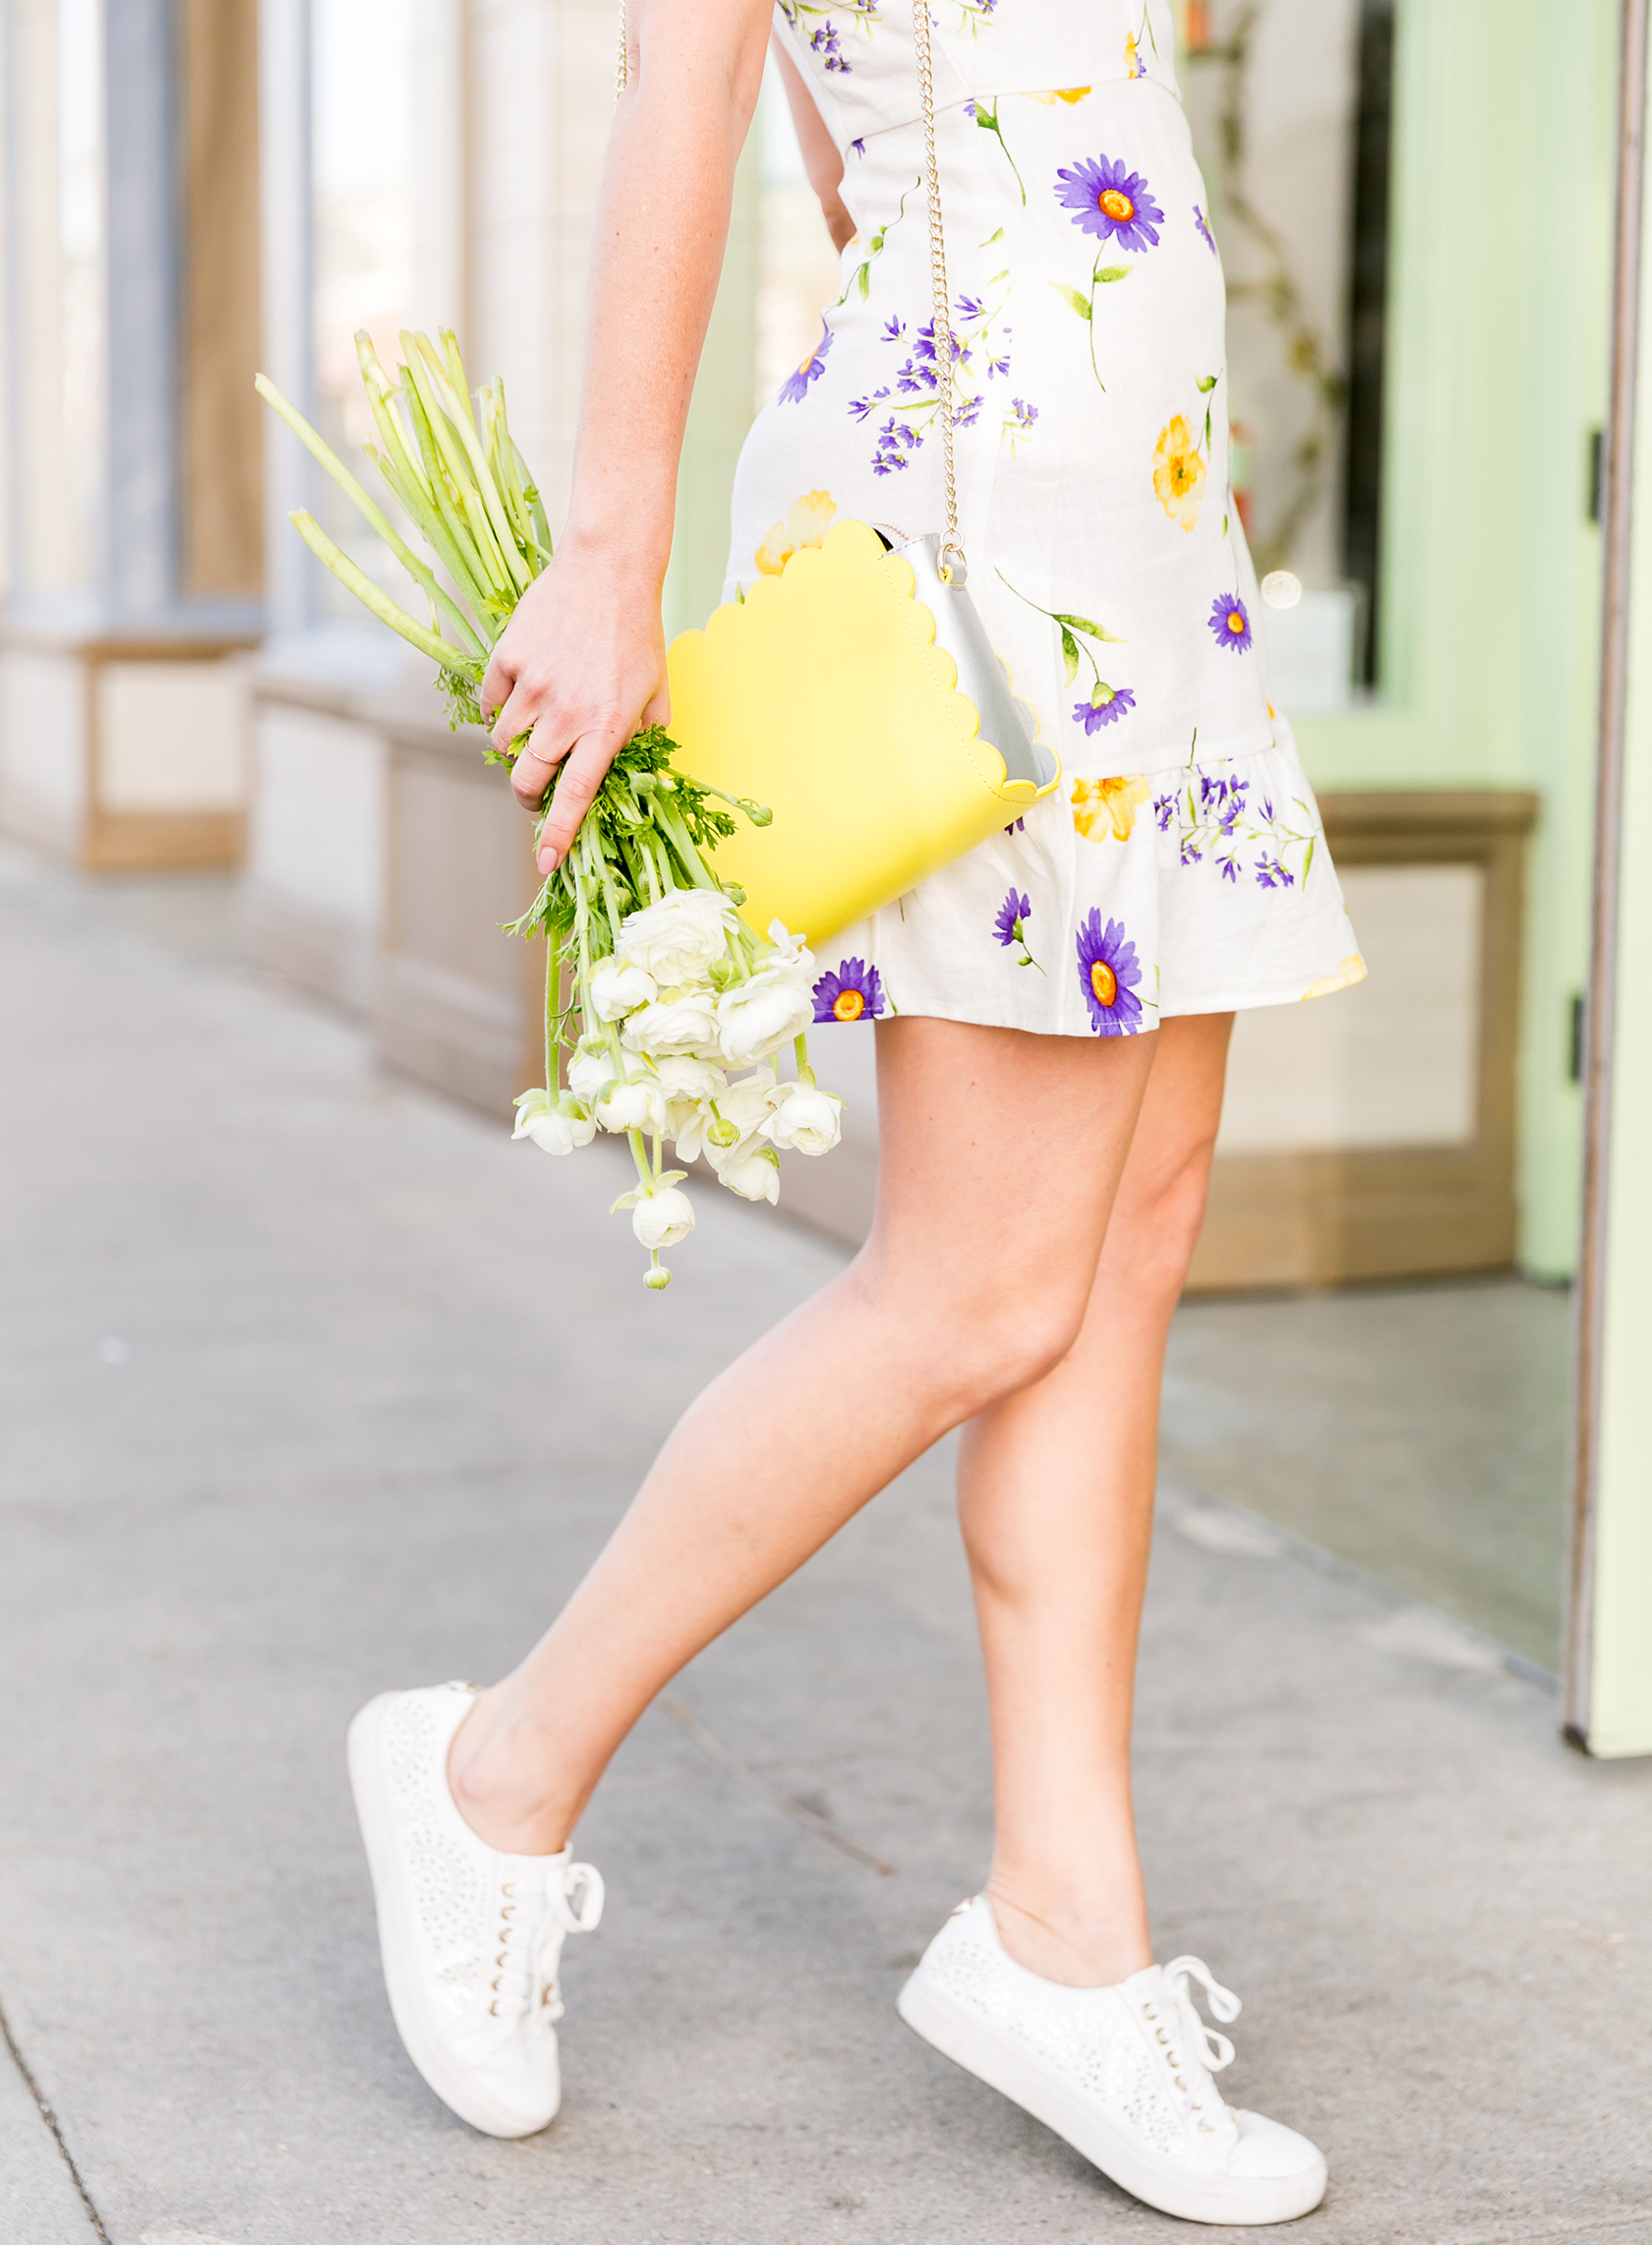 Sydne Style shows how to wear sneakers with dresses for summer outfit ideas